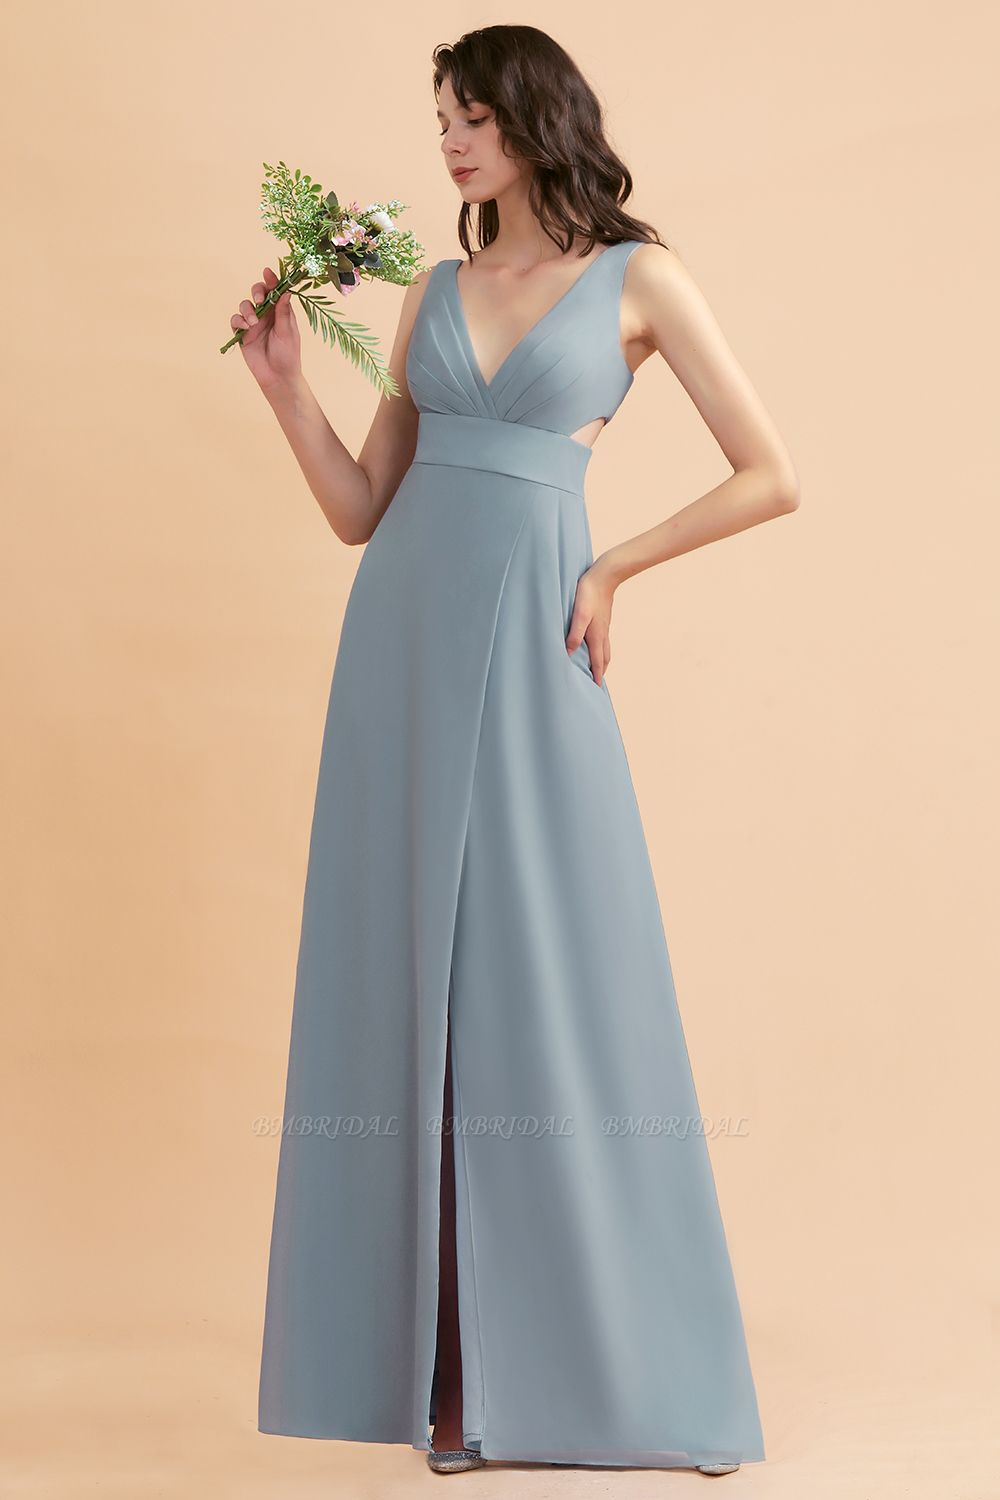 BMbridal A-Line Dusty Blue Chiffon Ruffles Bridesmaid Dress with Slit